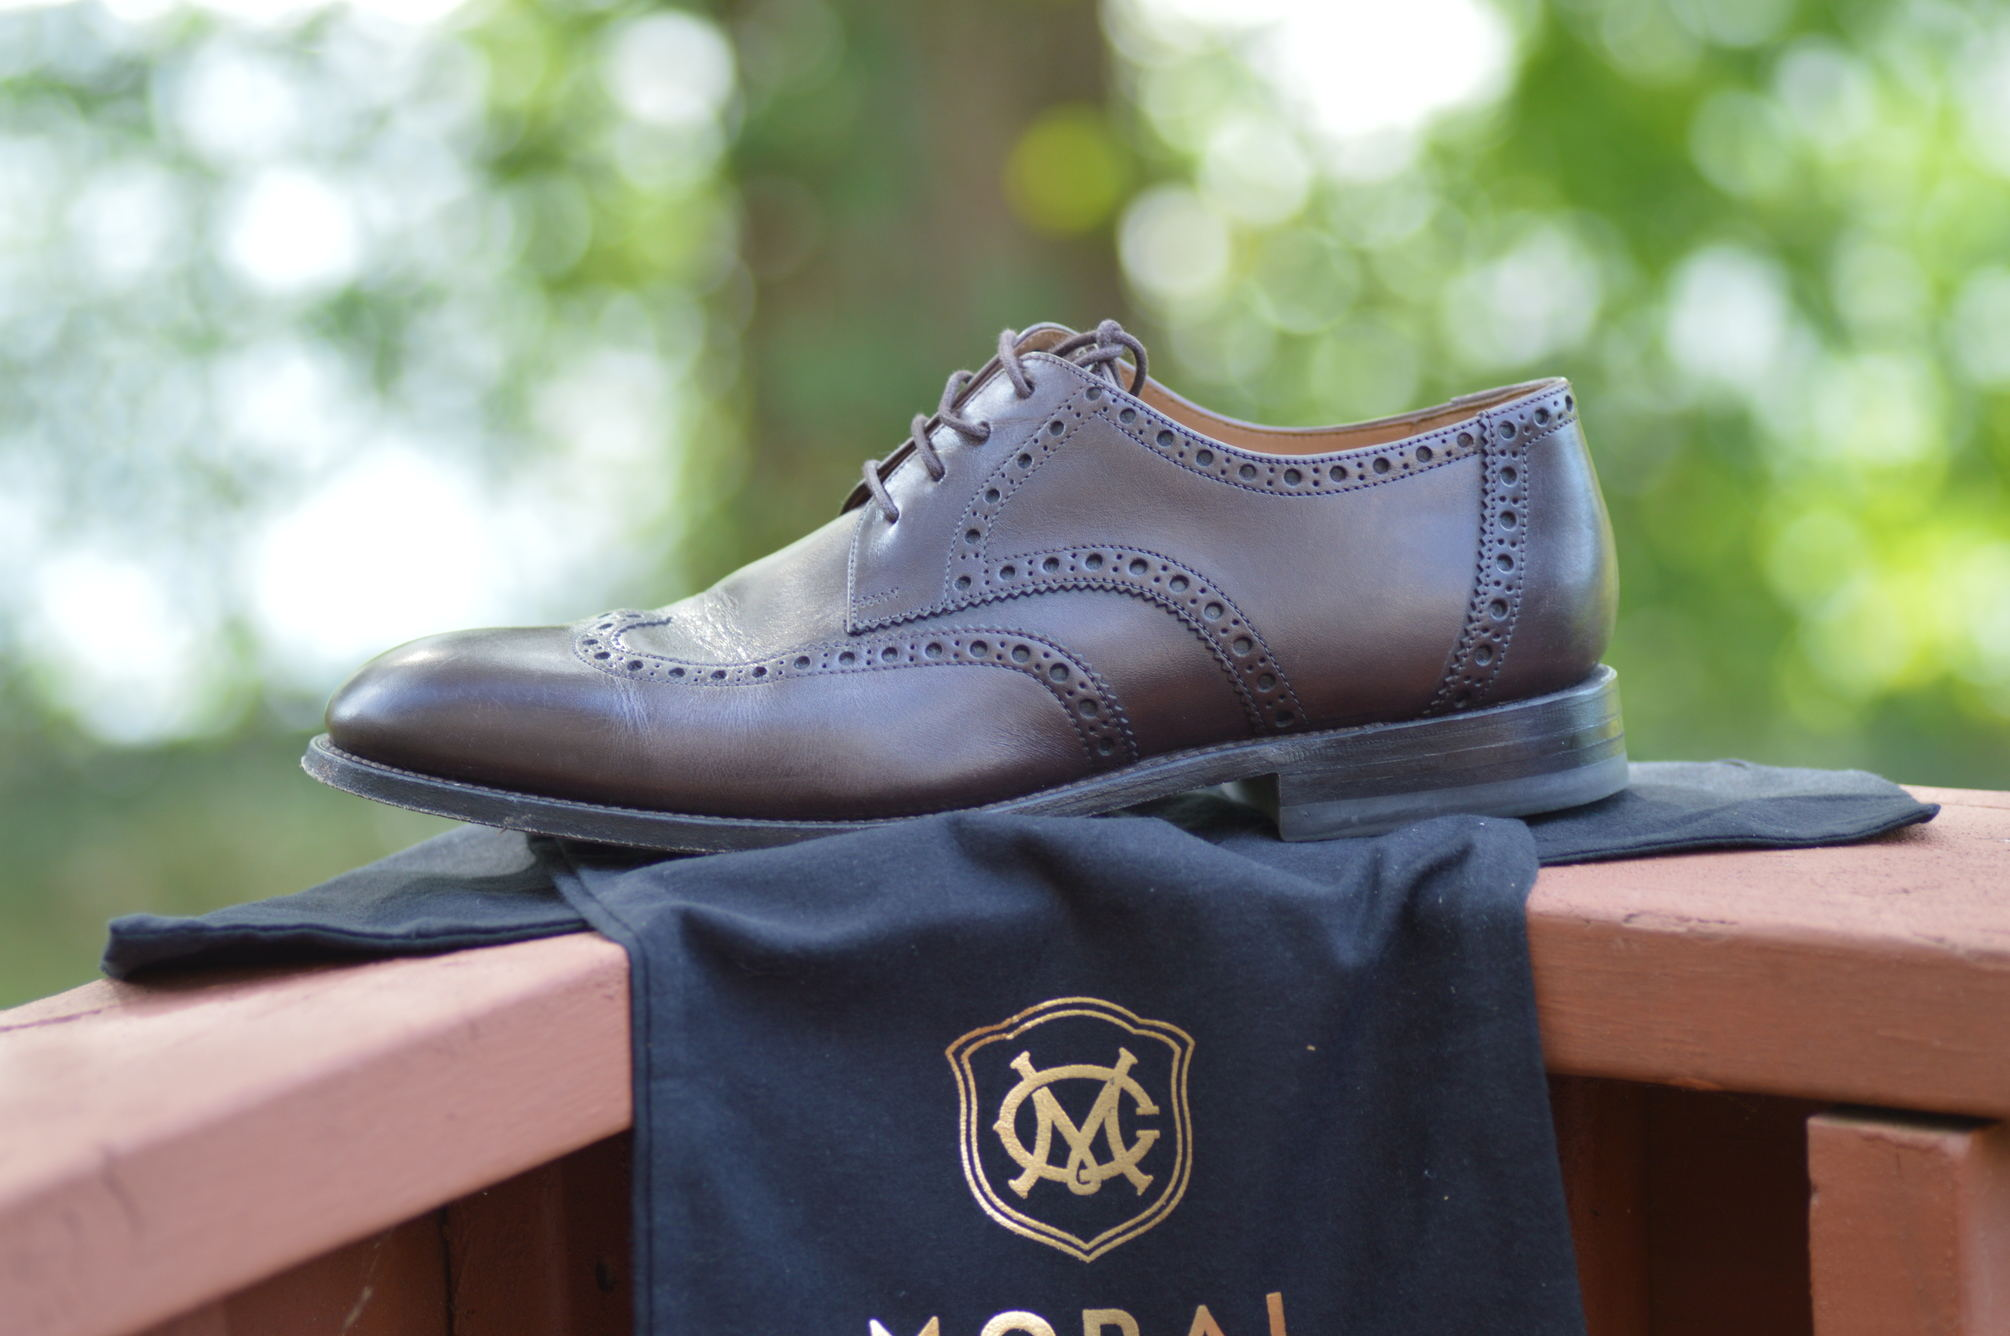 Moral Code Shoe Review